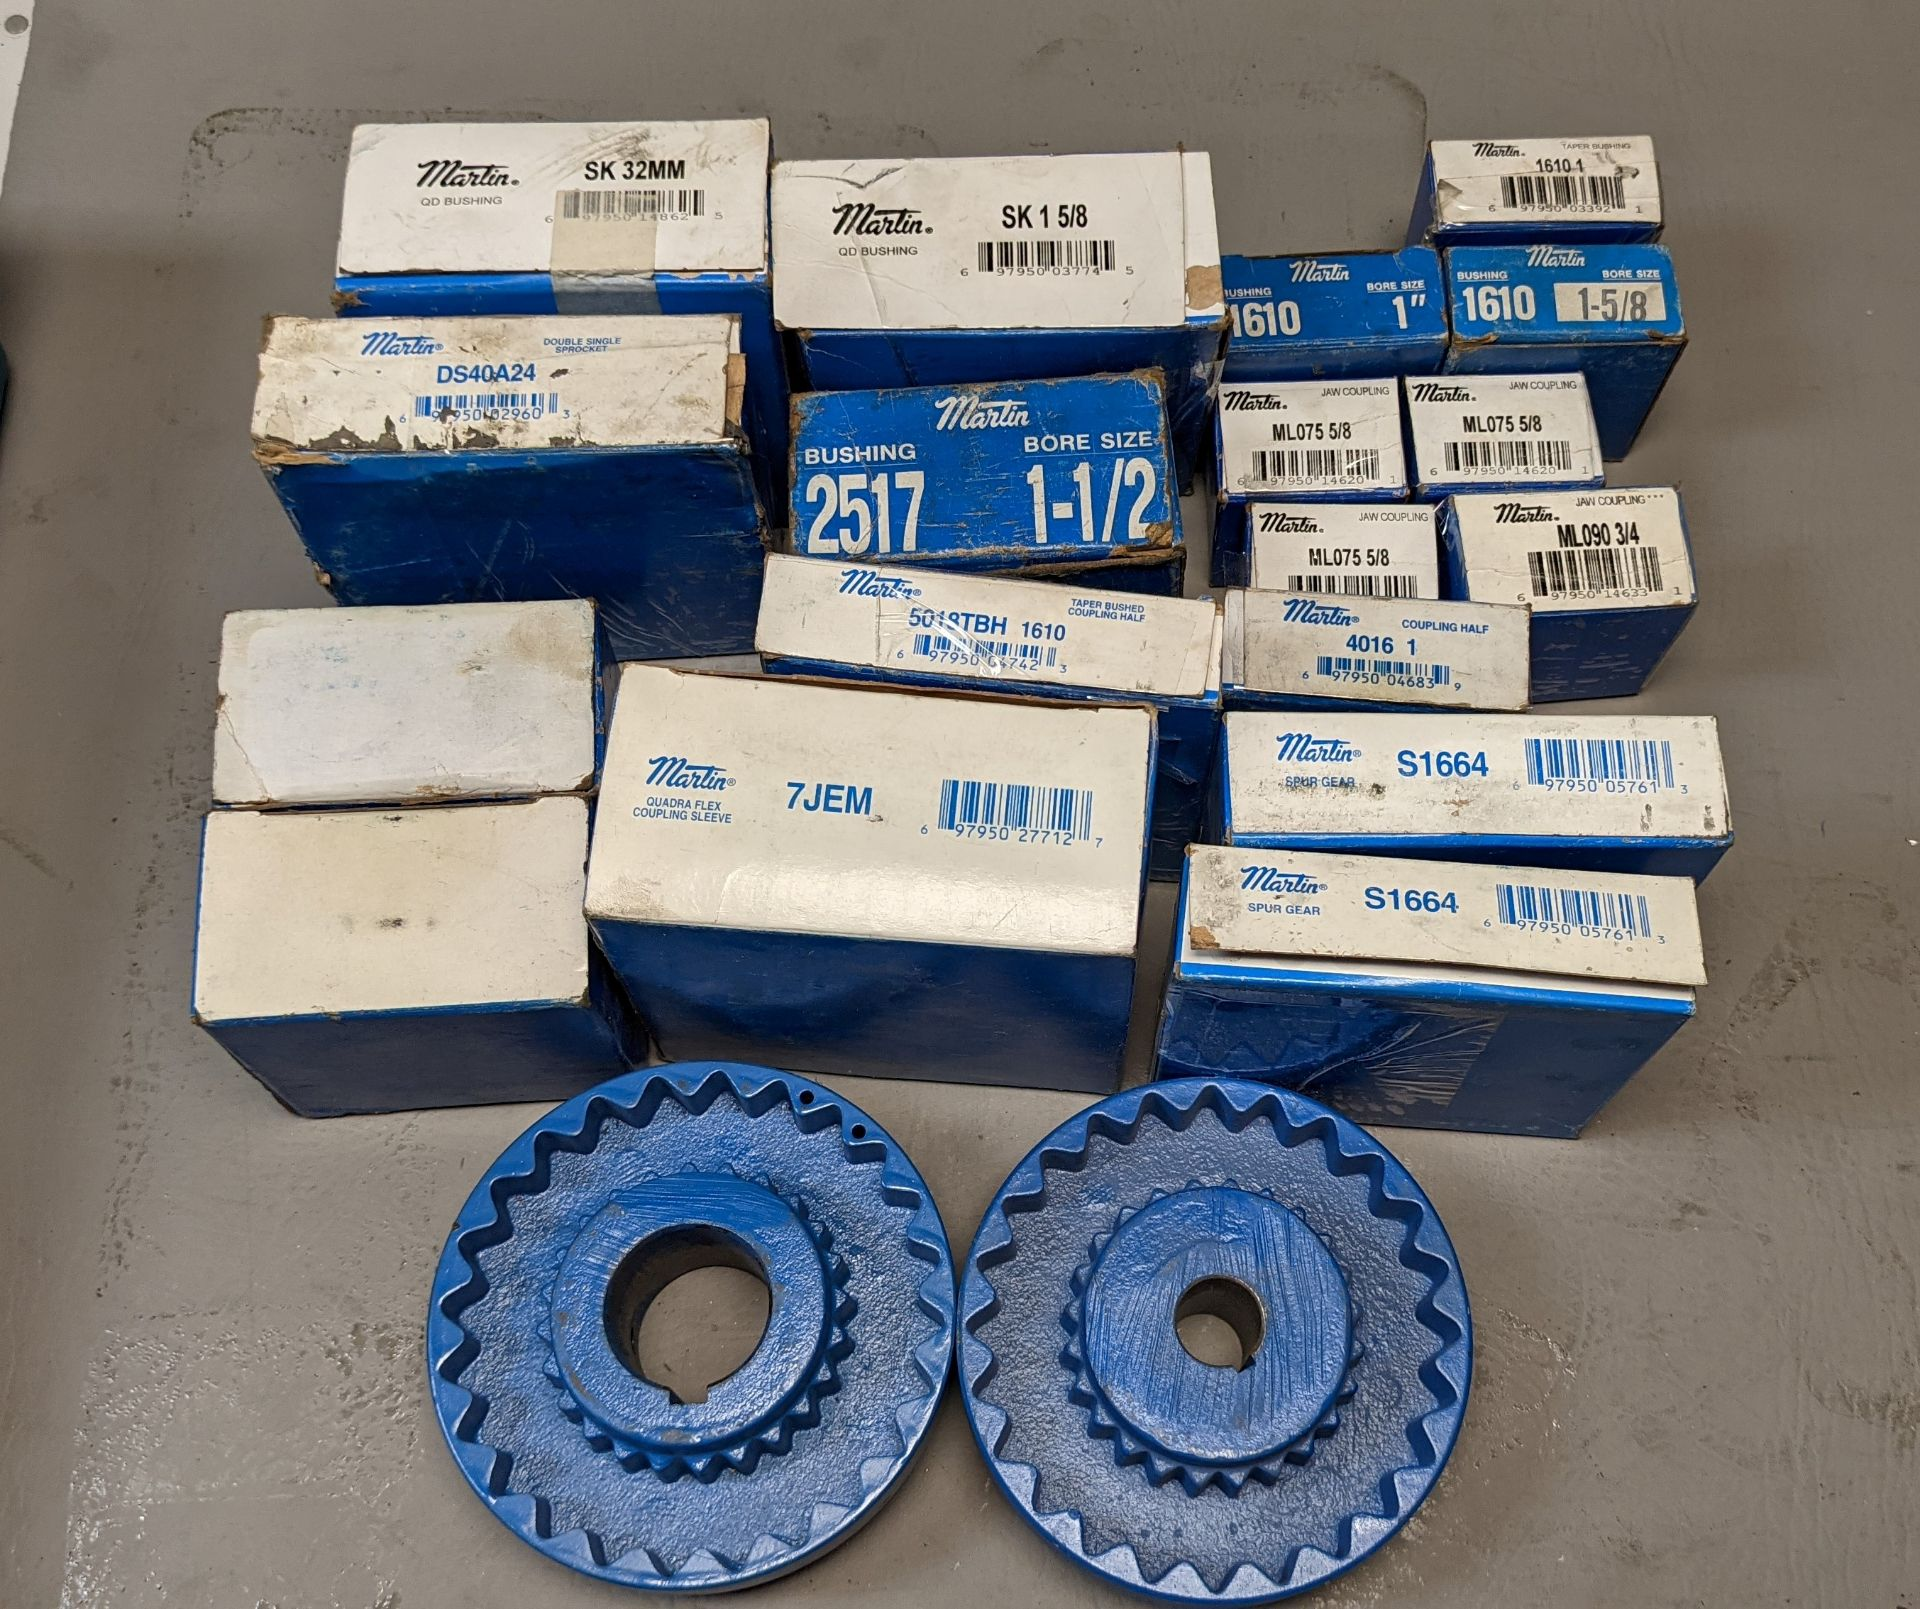 LOT OF NEW MARTIN SPROCKETS, SPUR GEARS, COUPLINGS ETC